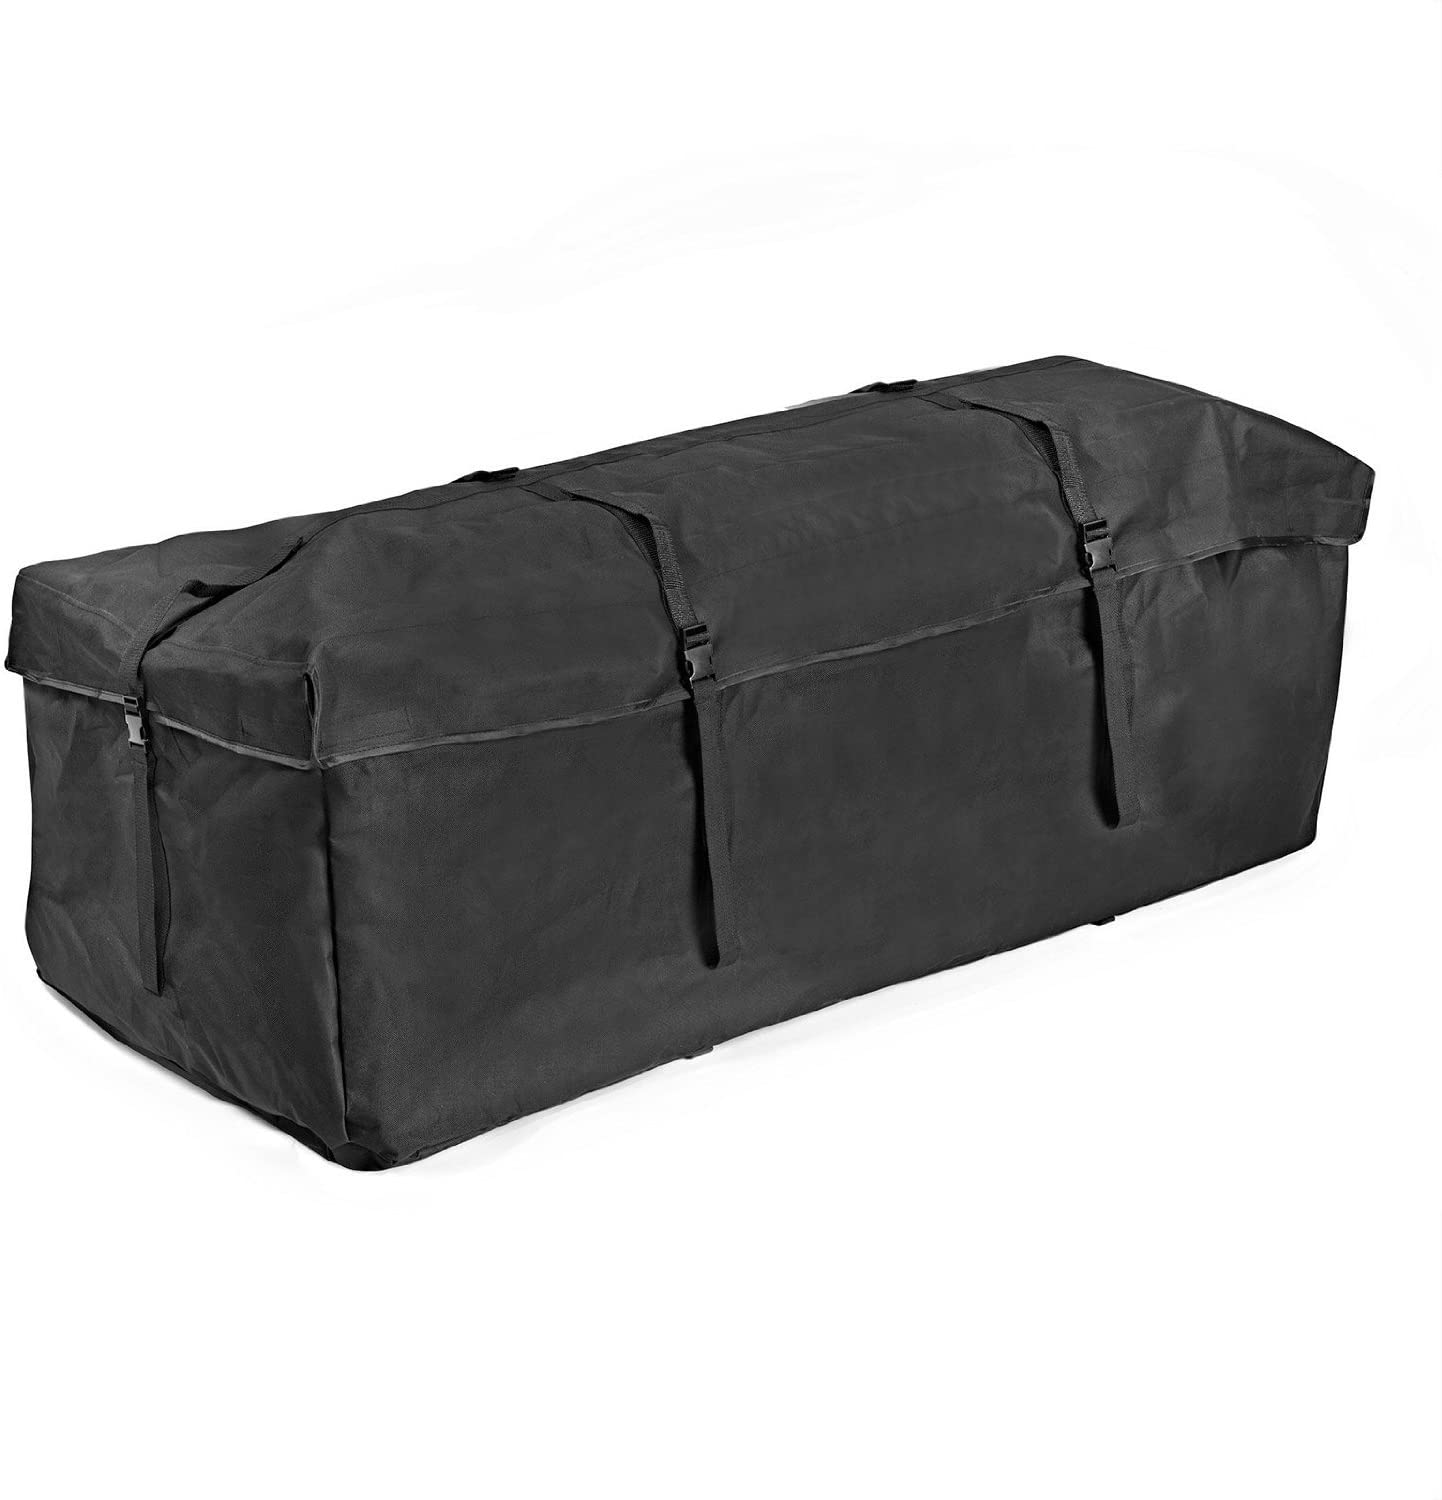 ARKSEN 58 Weather and Water Resistant Cargo Carrier Bag 58 x 20 x 19.5